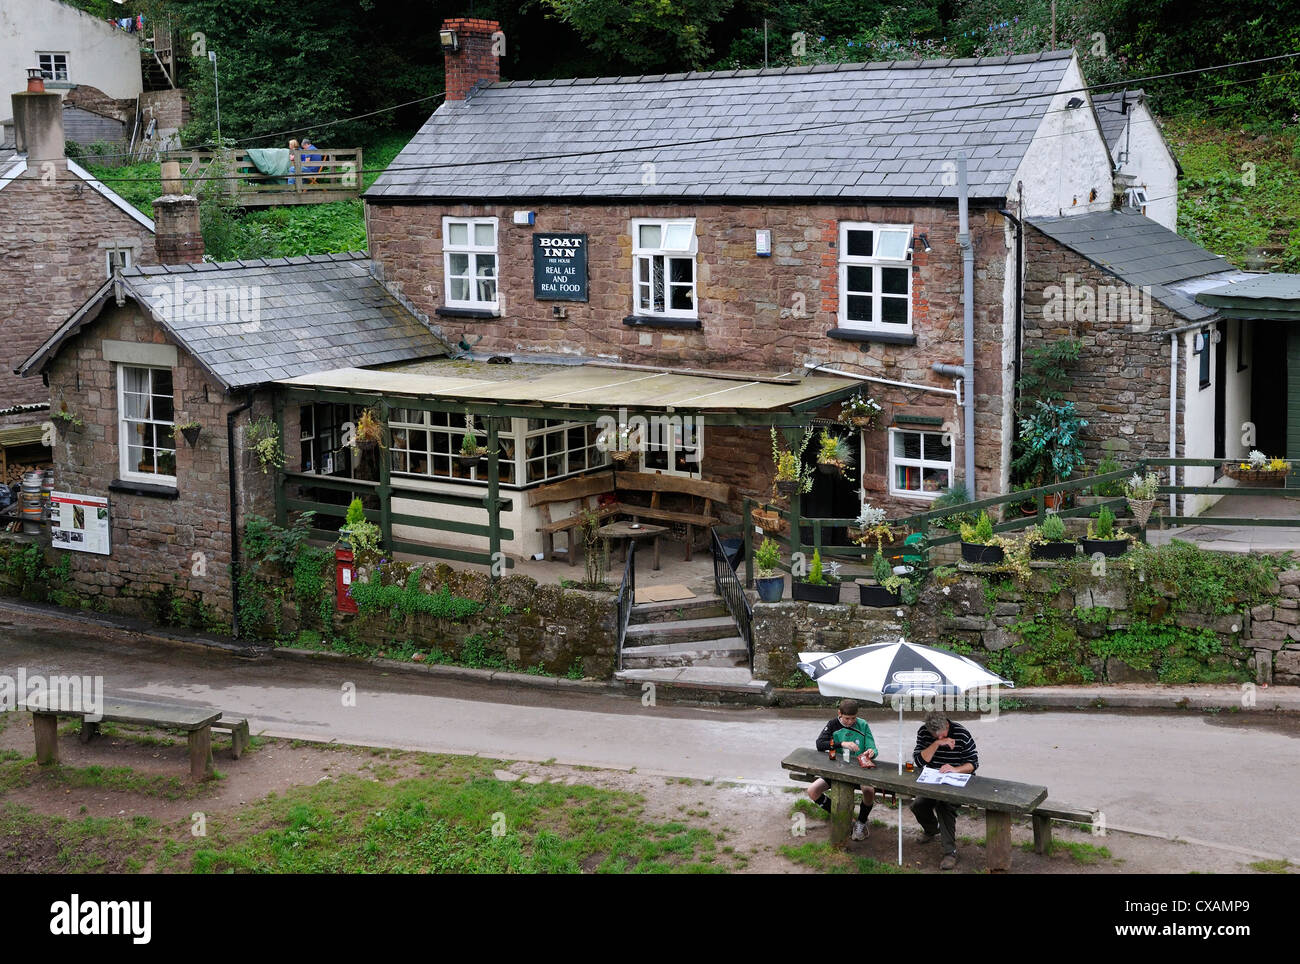 The Boat Inn, Penallt on the banks of the River Wye, opposite Redbrook - Stock Image